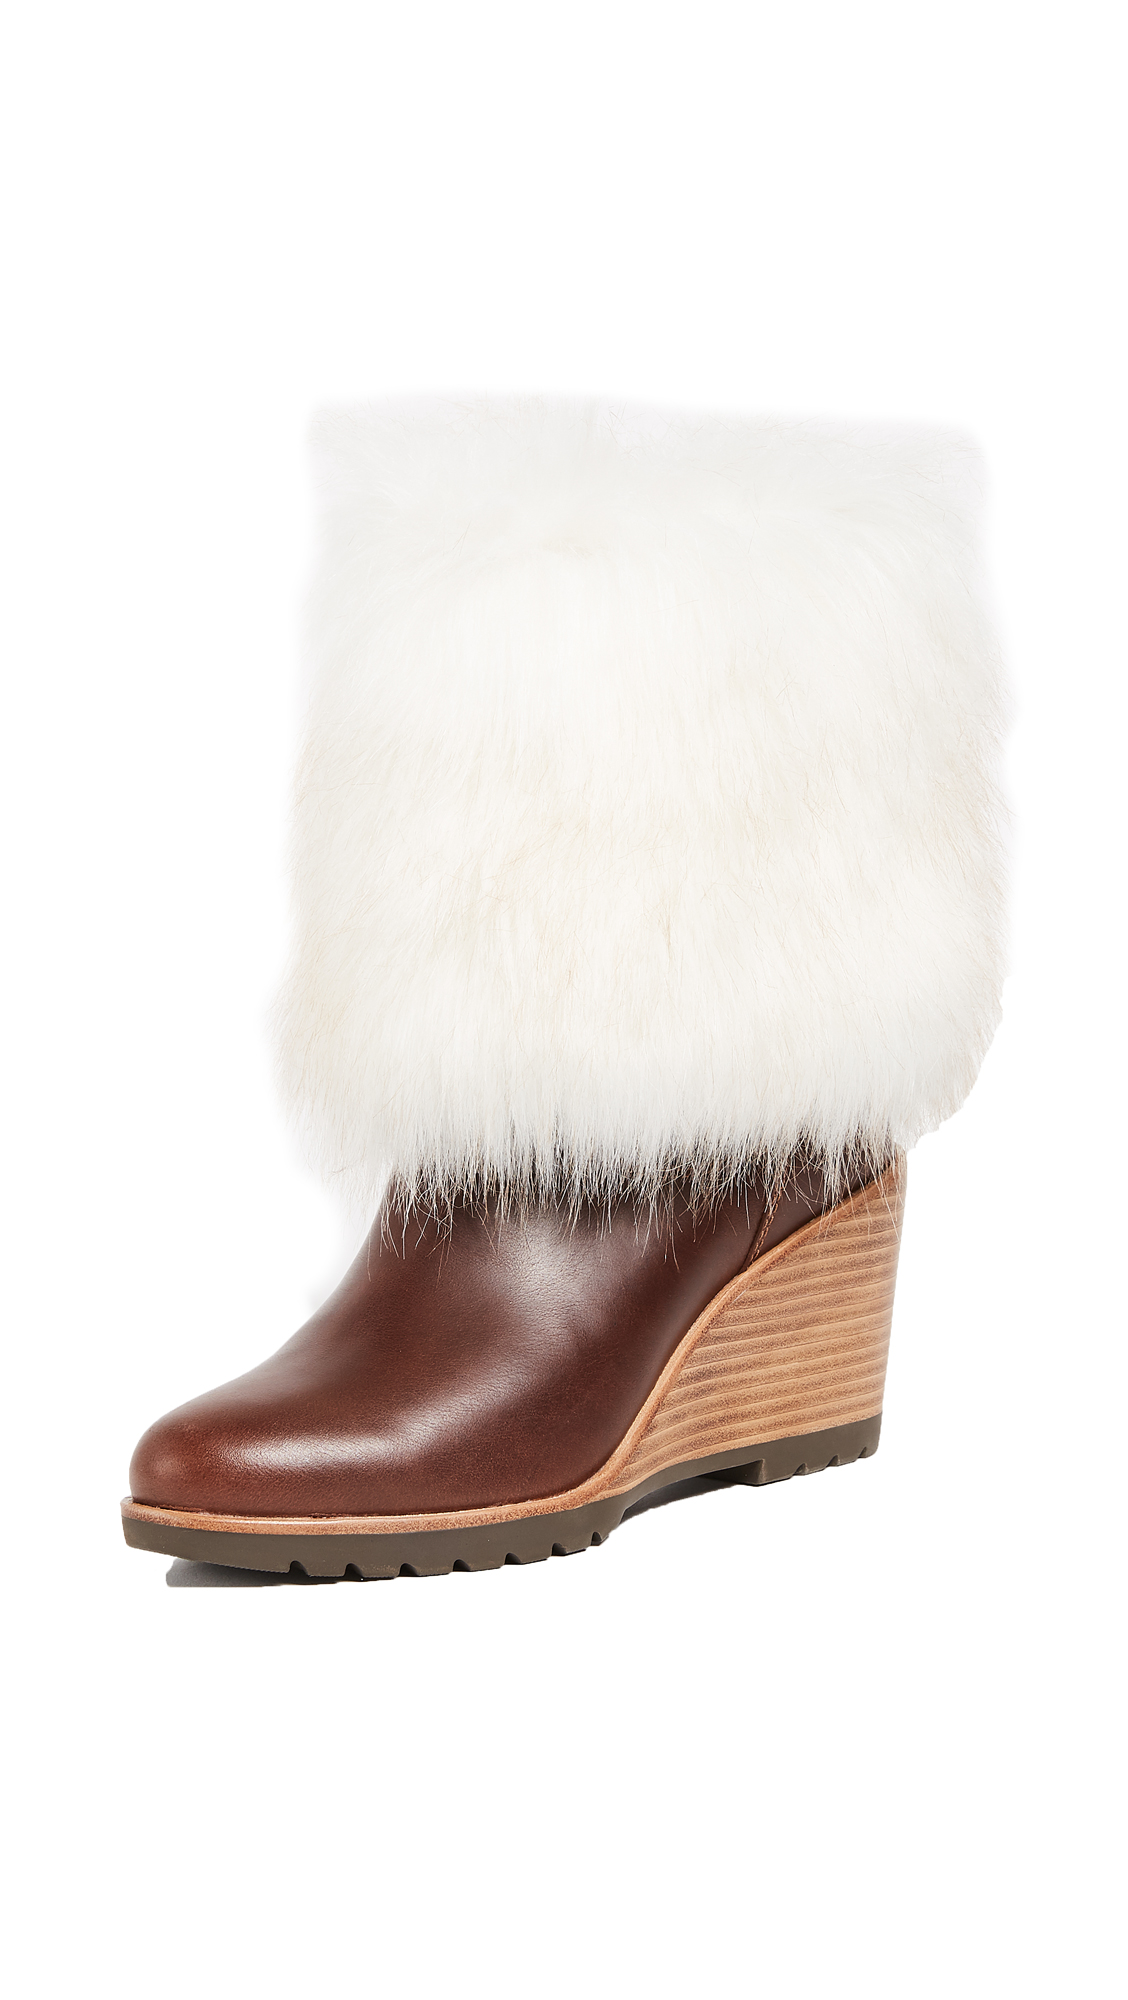 Sorel Park City Short Wedge Booties - Elk